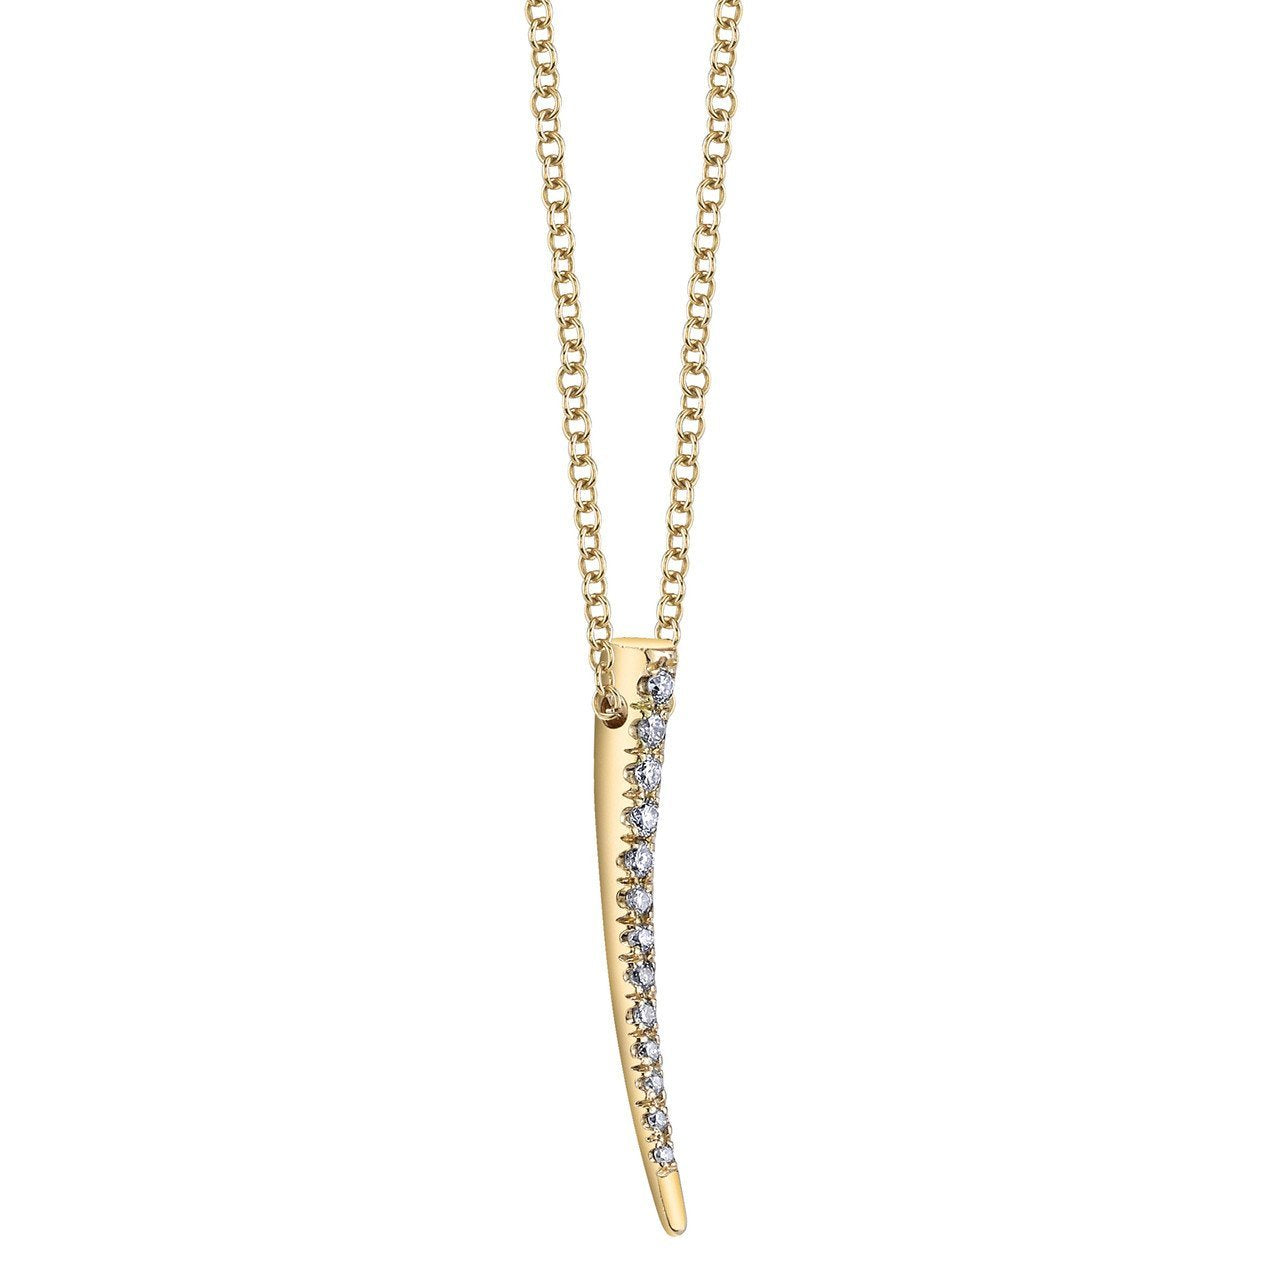 Gabriela Artigas Mini Signature Tusk Necklace with White Pavé